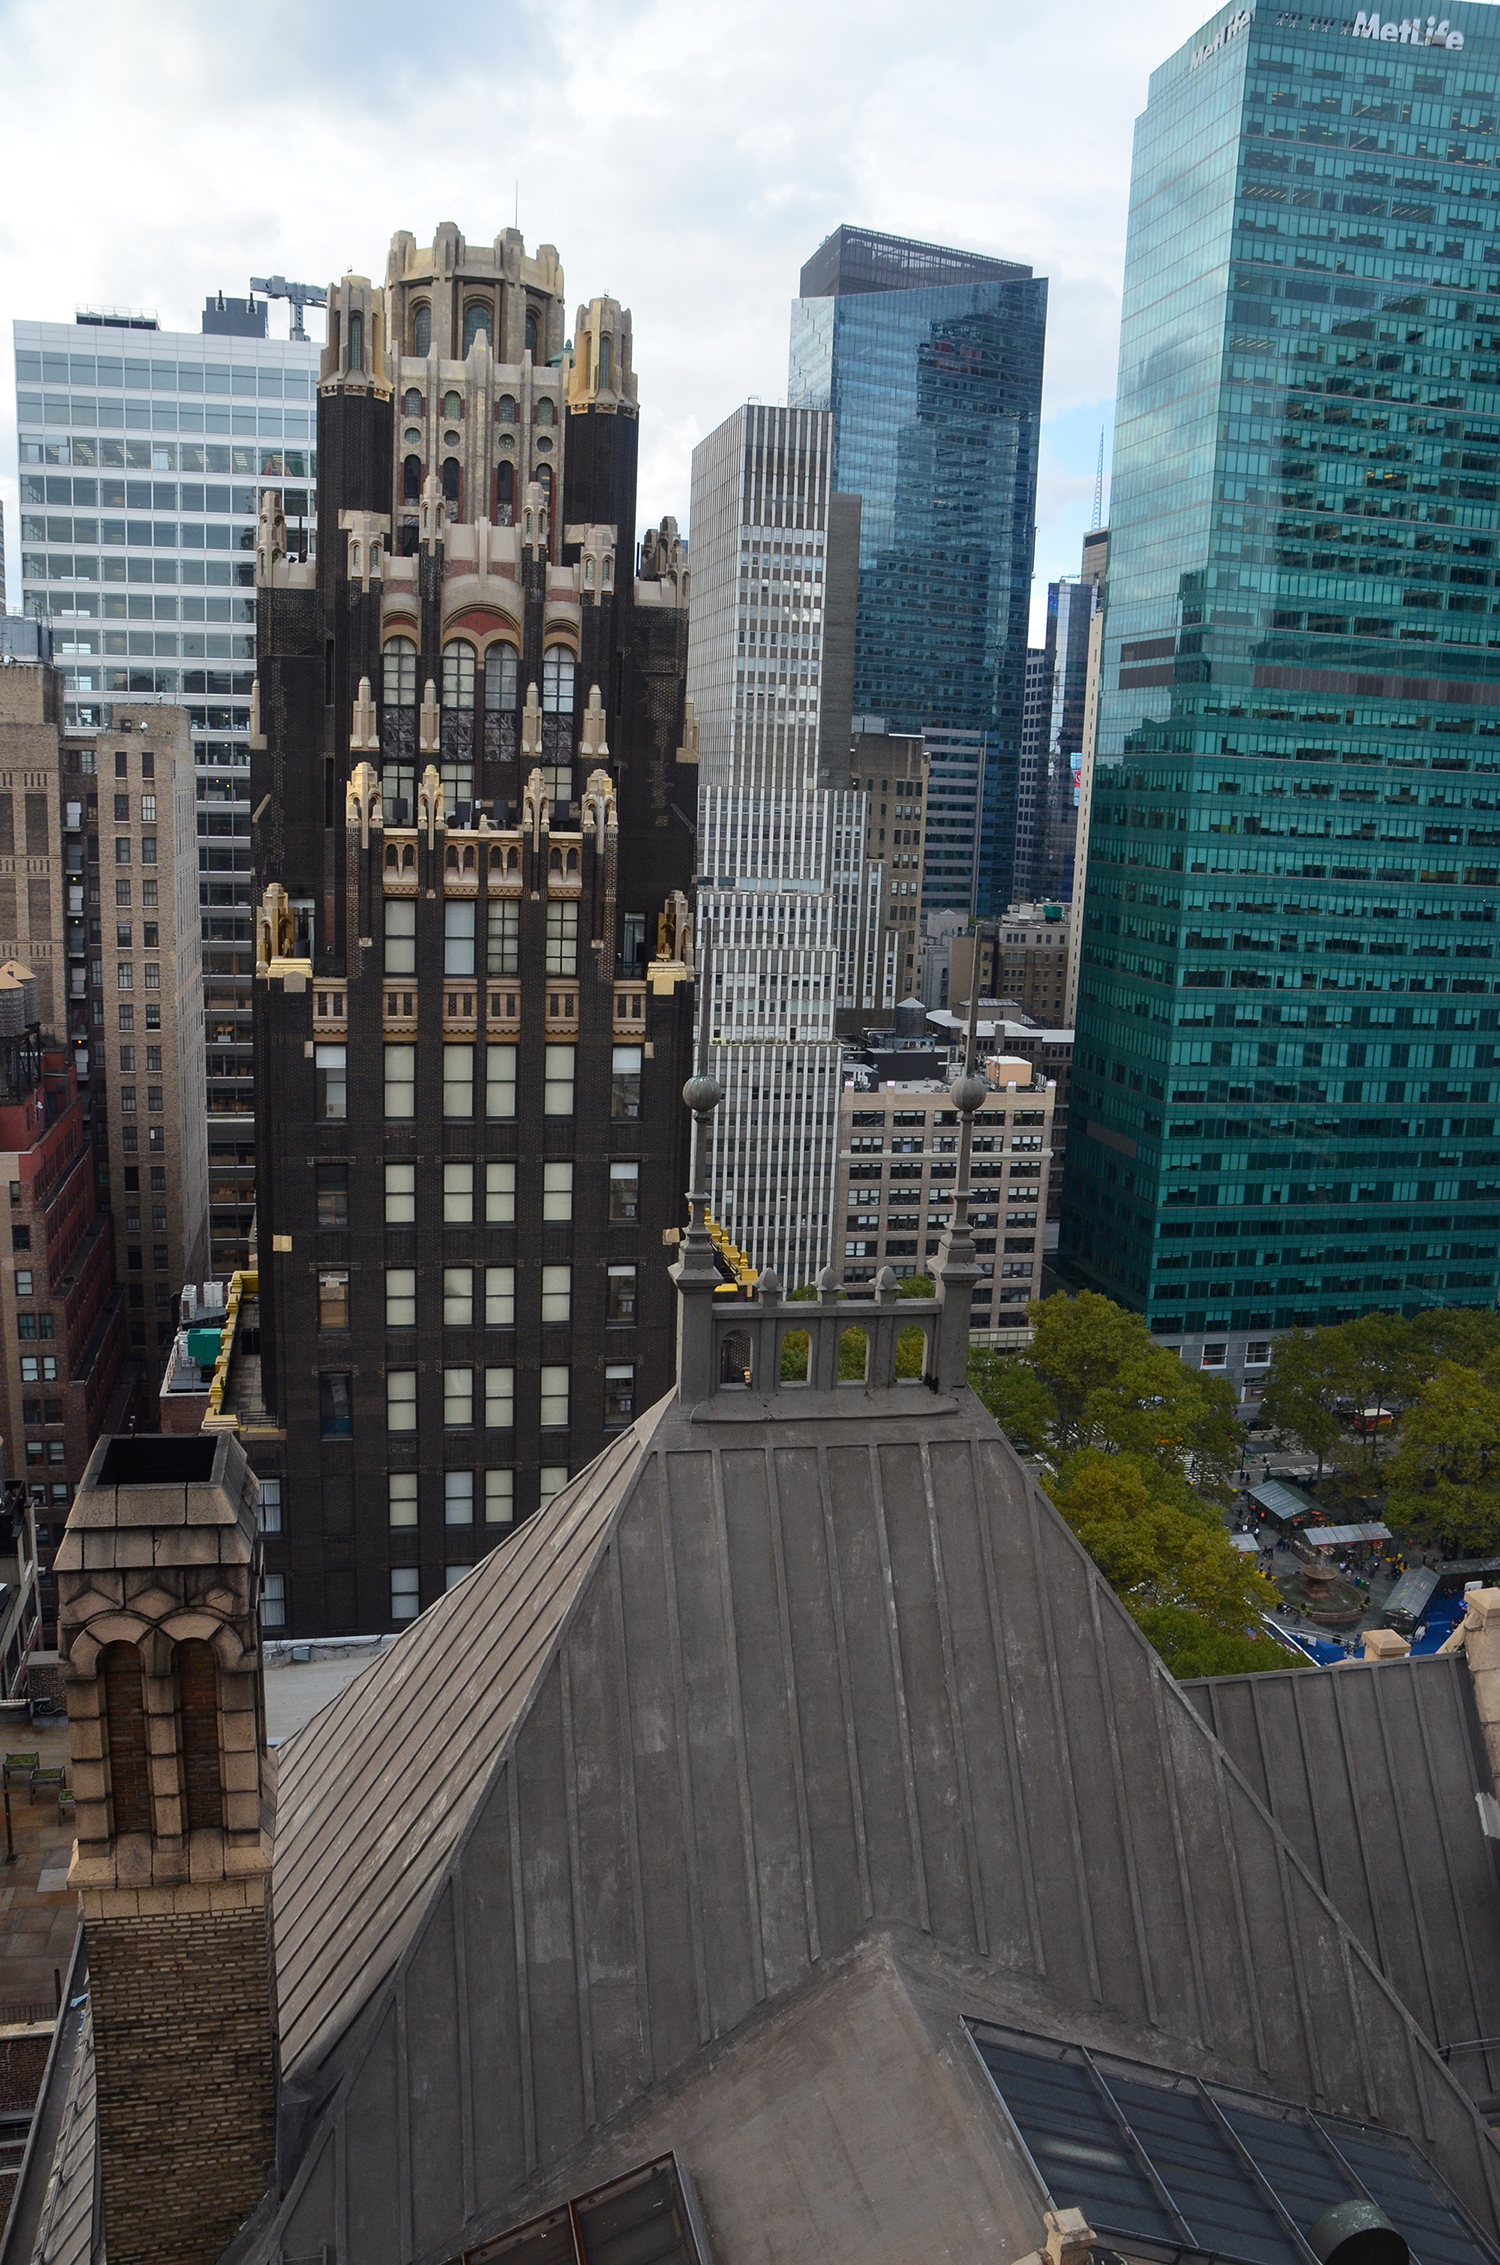 The Bryant Park Hotel and 24 West 40th Street as seen from The Bryant